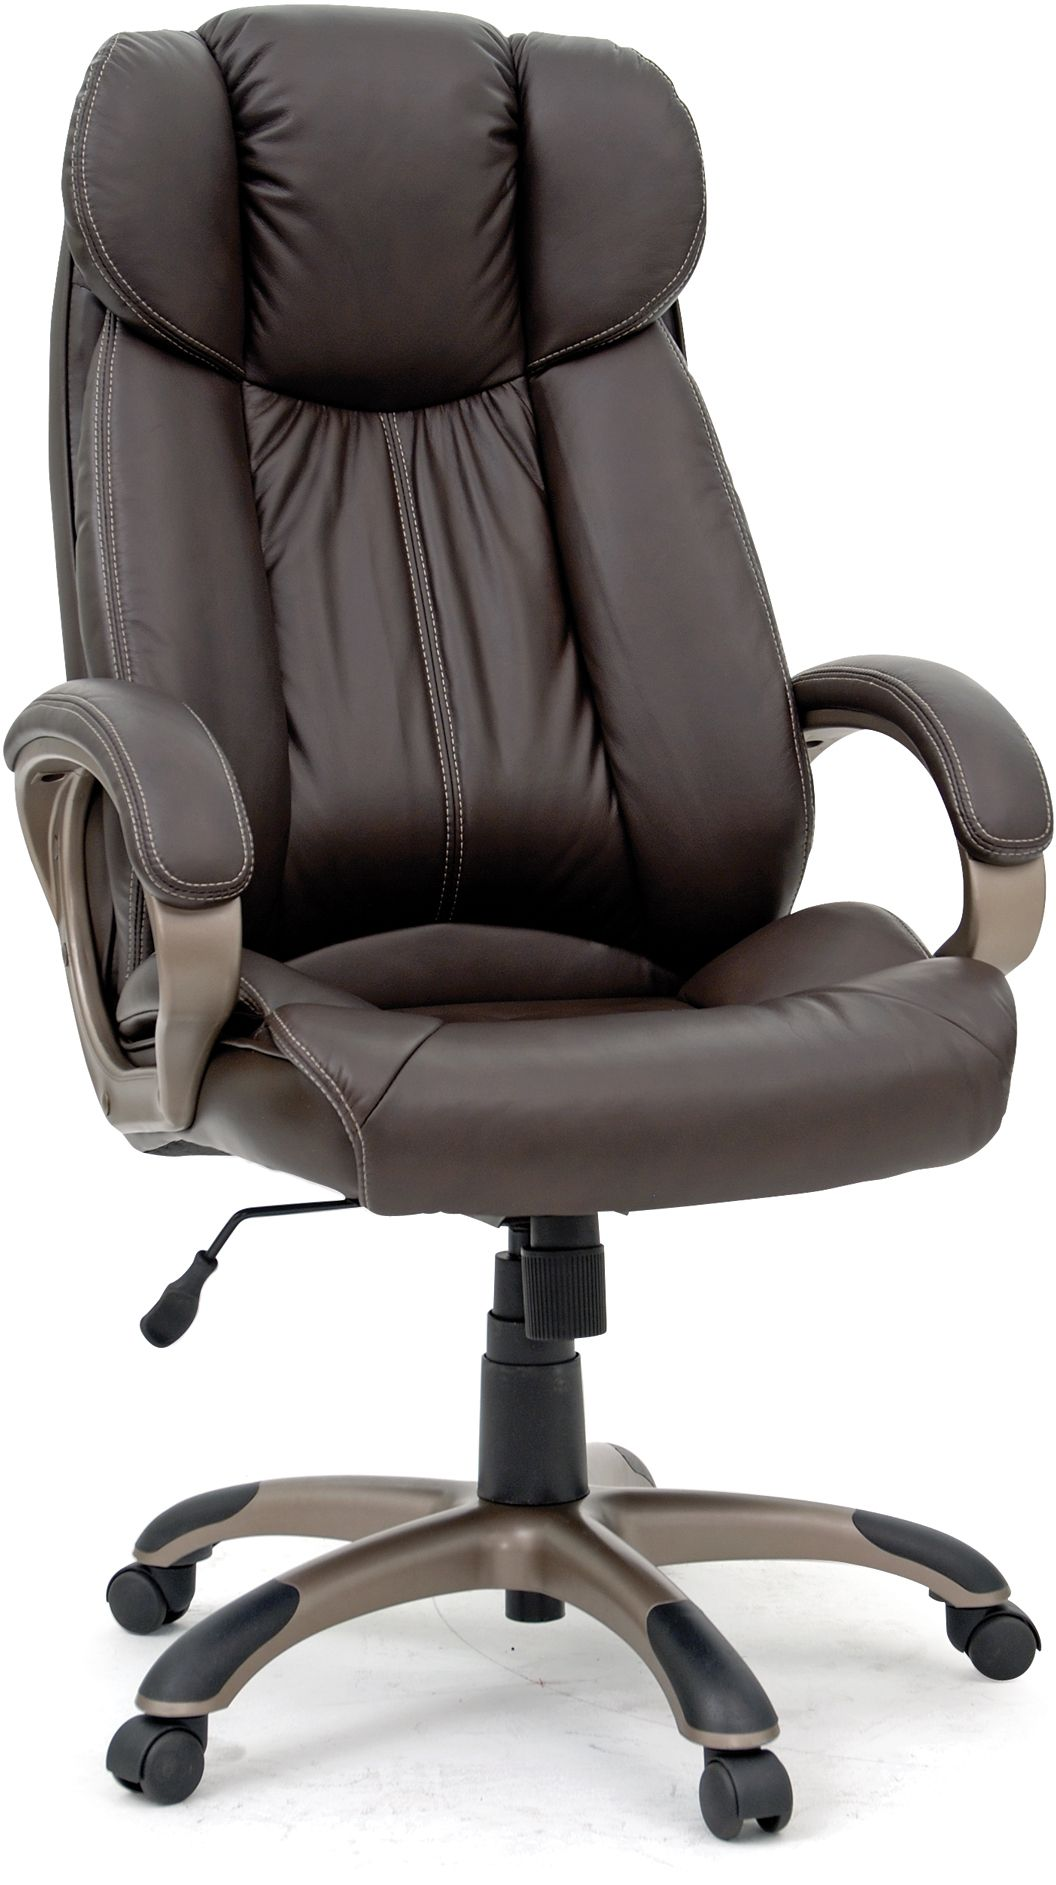 Sauder 174 Gruda Brown Executive Leather Chair 411903